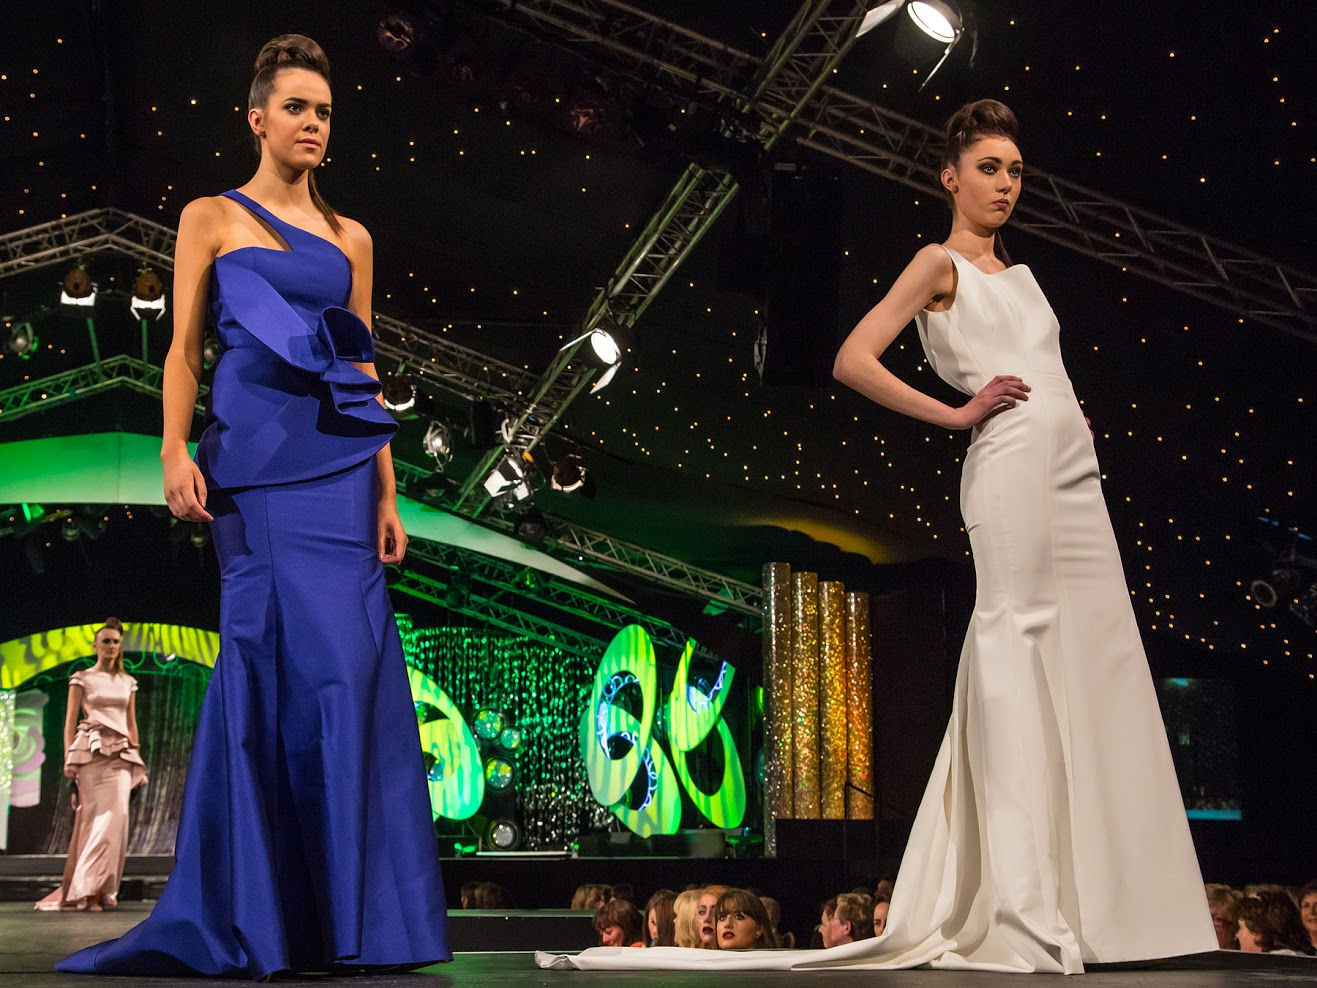 dolf_patijn_rose_of_tralee_fashion_16082015_0470